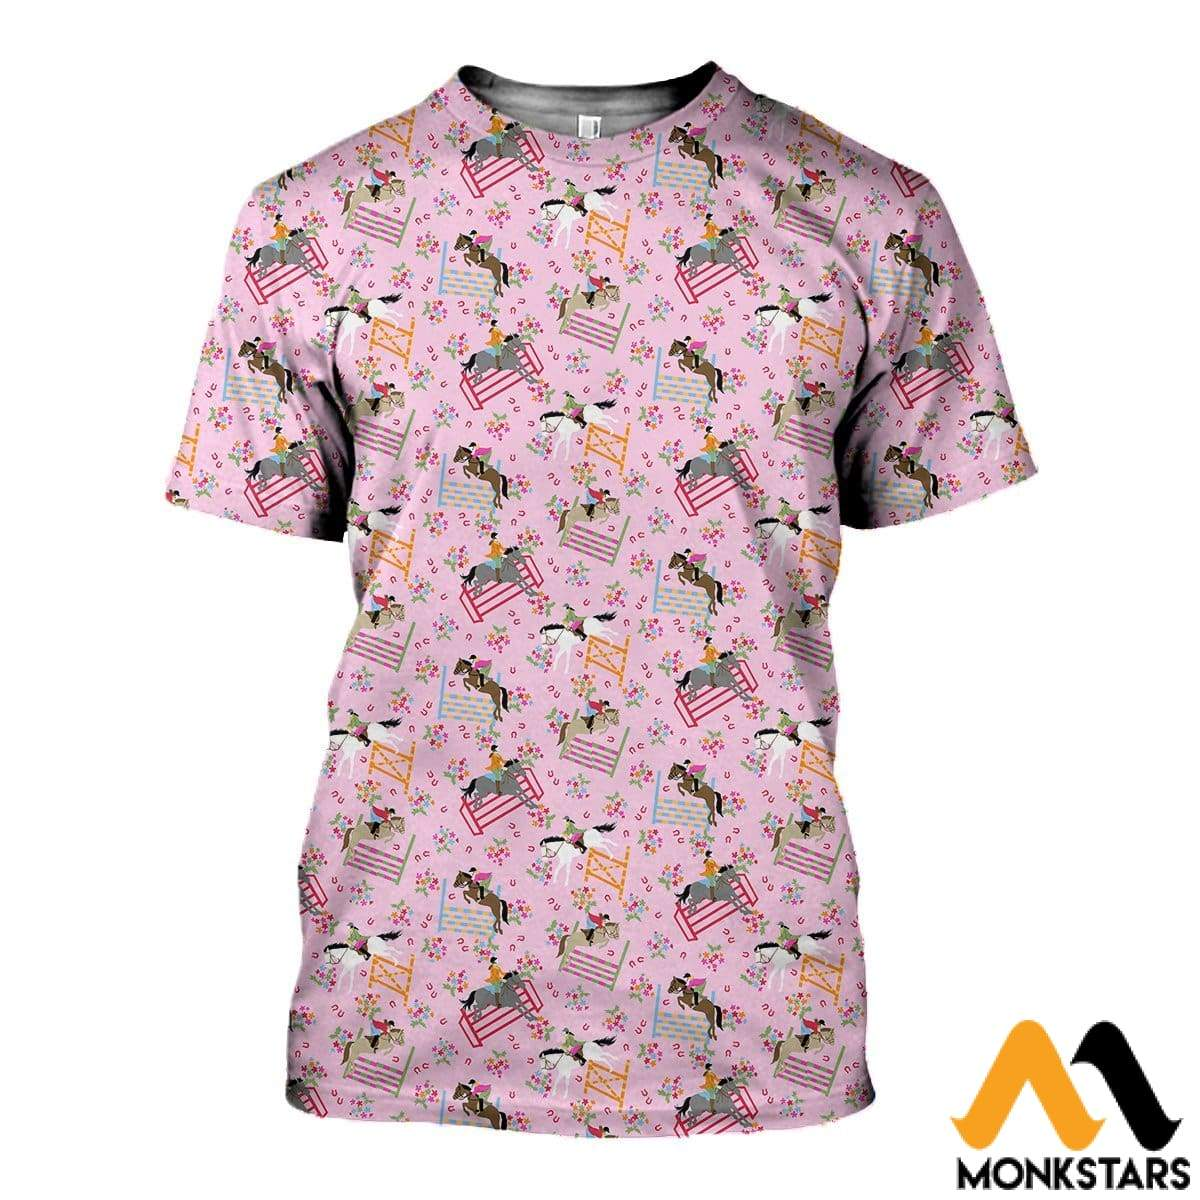 3D Printed Horse Racing Floral Clothes T-Shirt / Xs